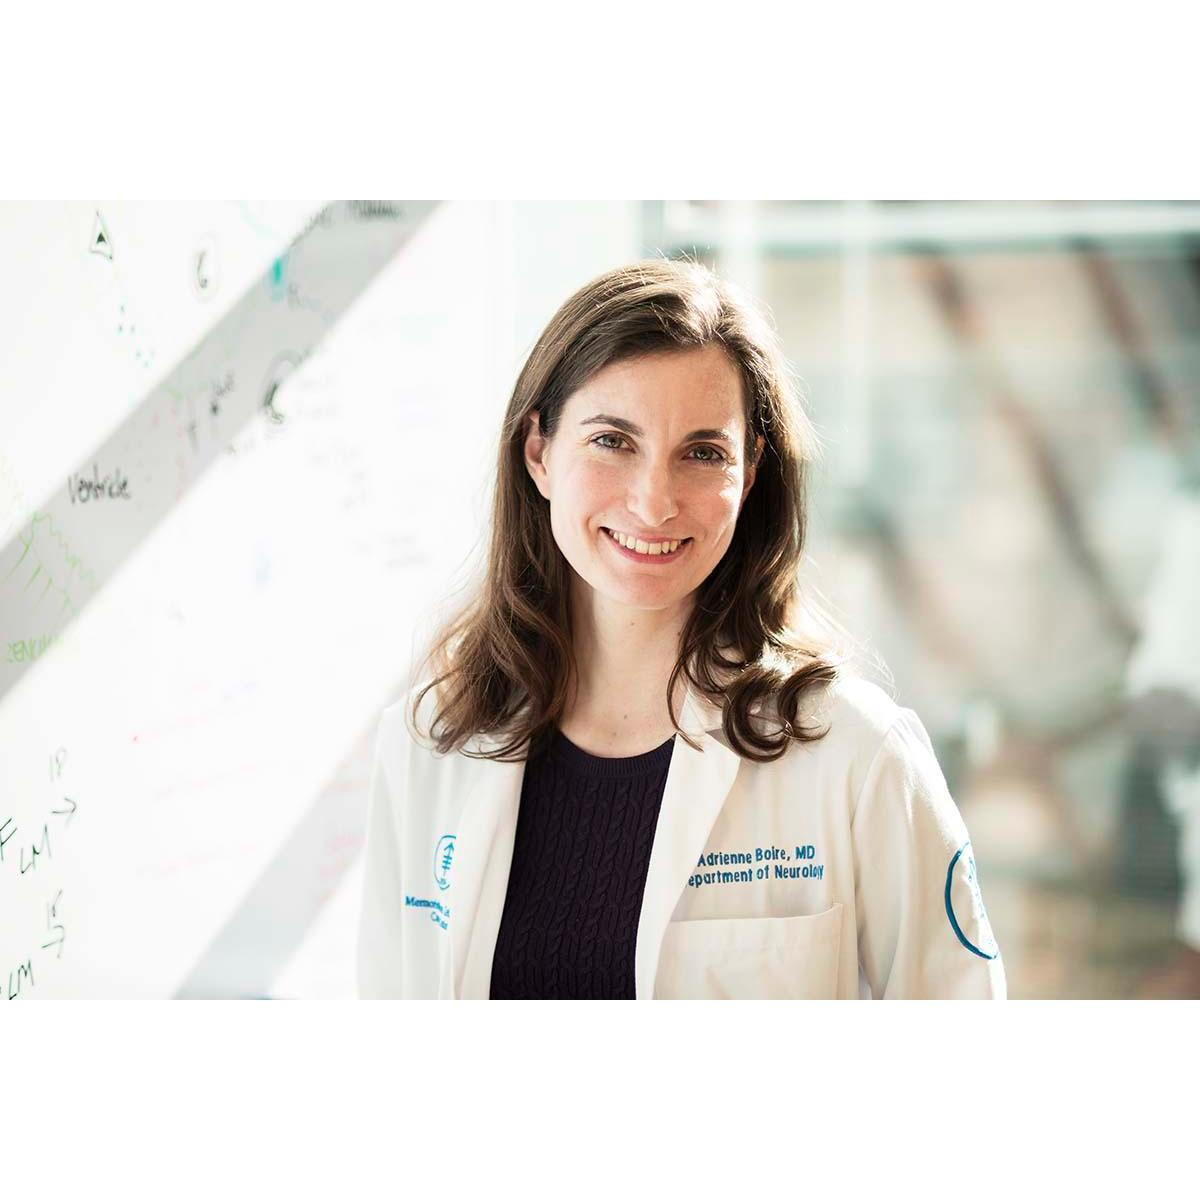 Image For Dr. Adrienne A. Boire MD, PHD